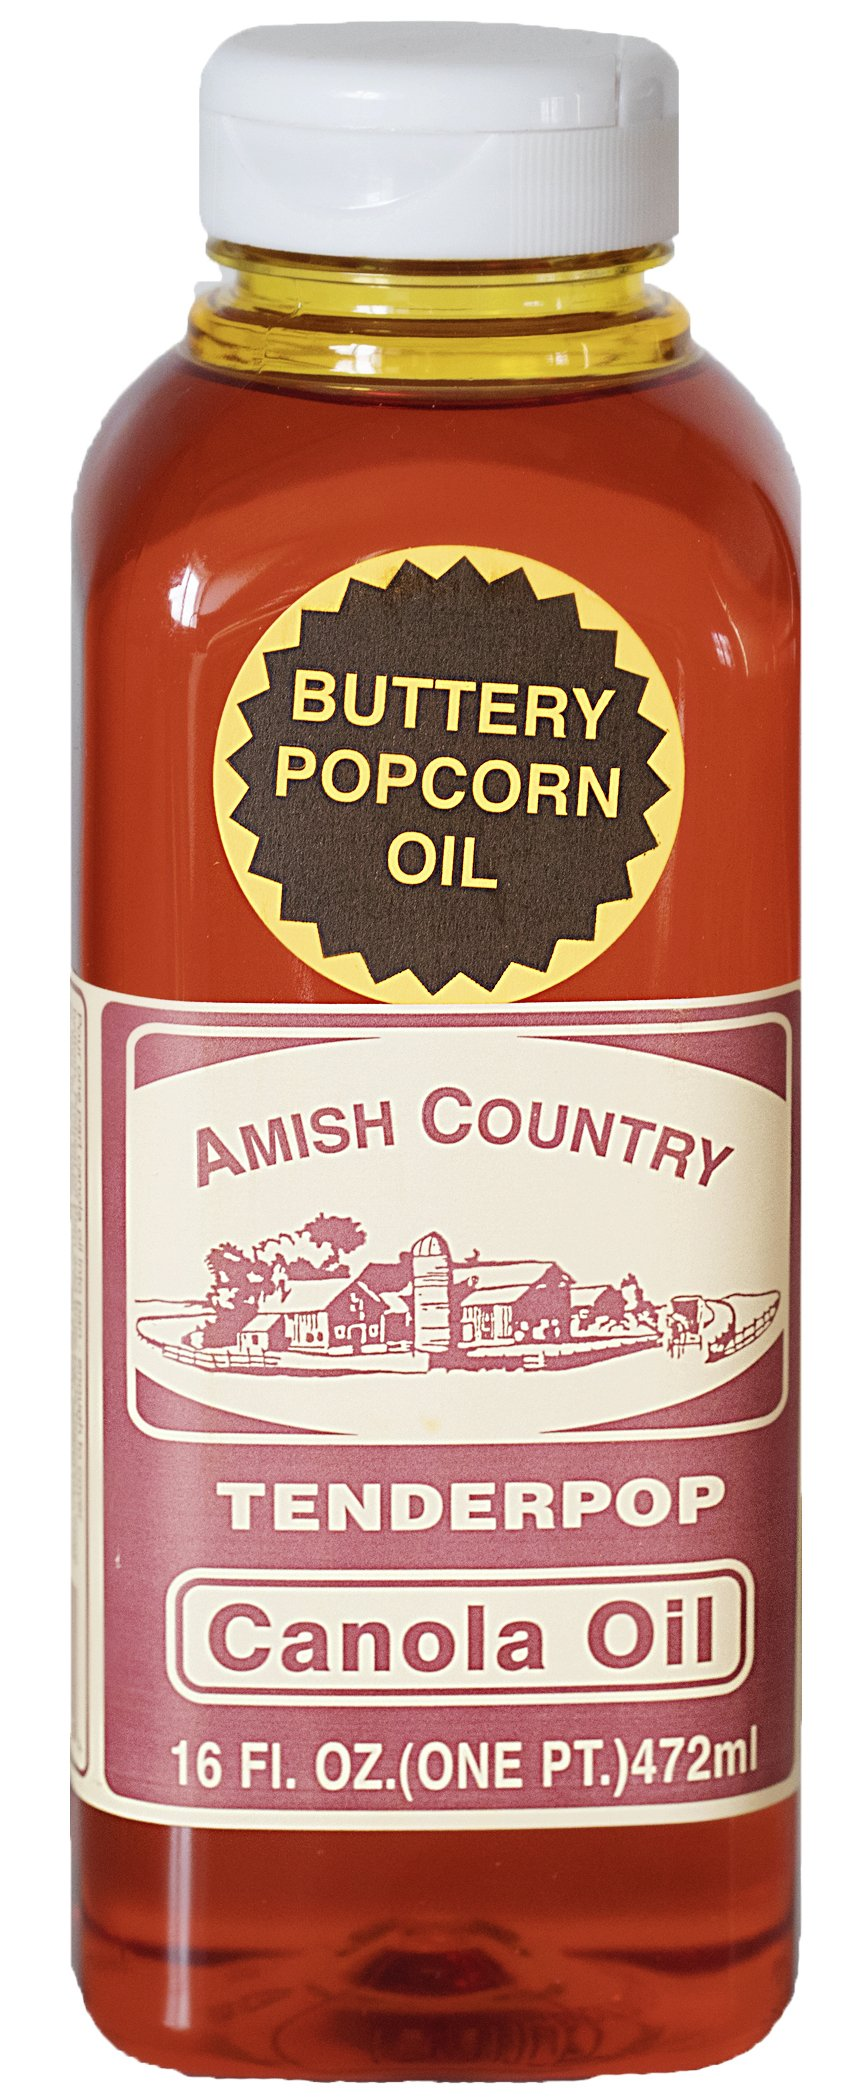 Amish Country Popcorn - Canola Oil - 16 fl oz with Recipe Guide - Old Fashioned, Non GMO and Gluten Free - 1 Year Freshness Guarantee